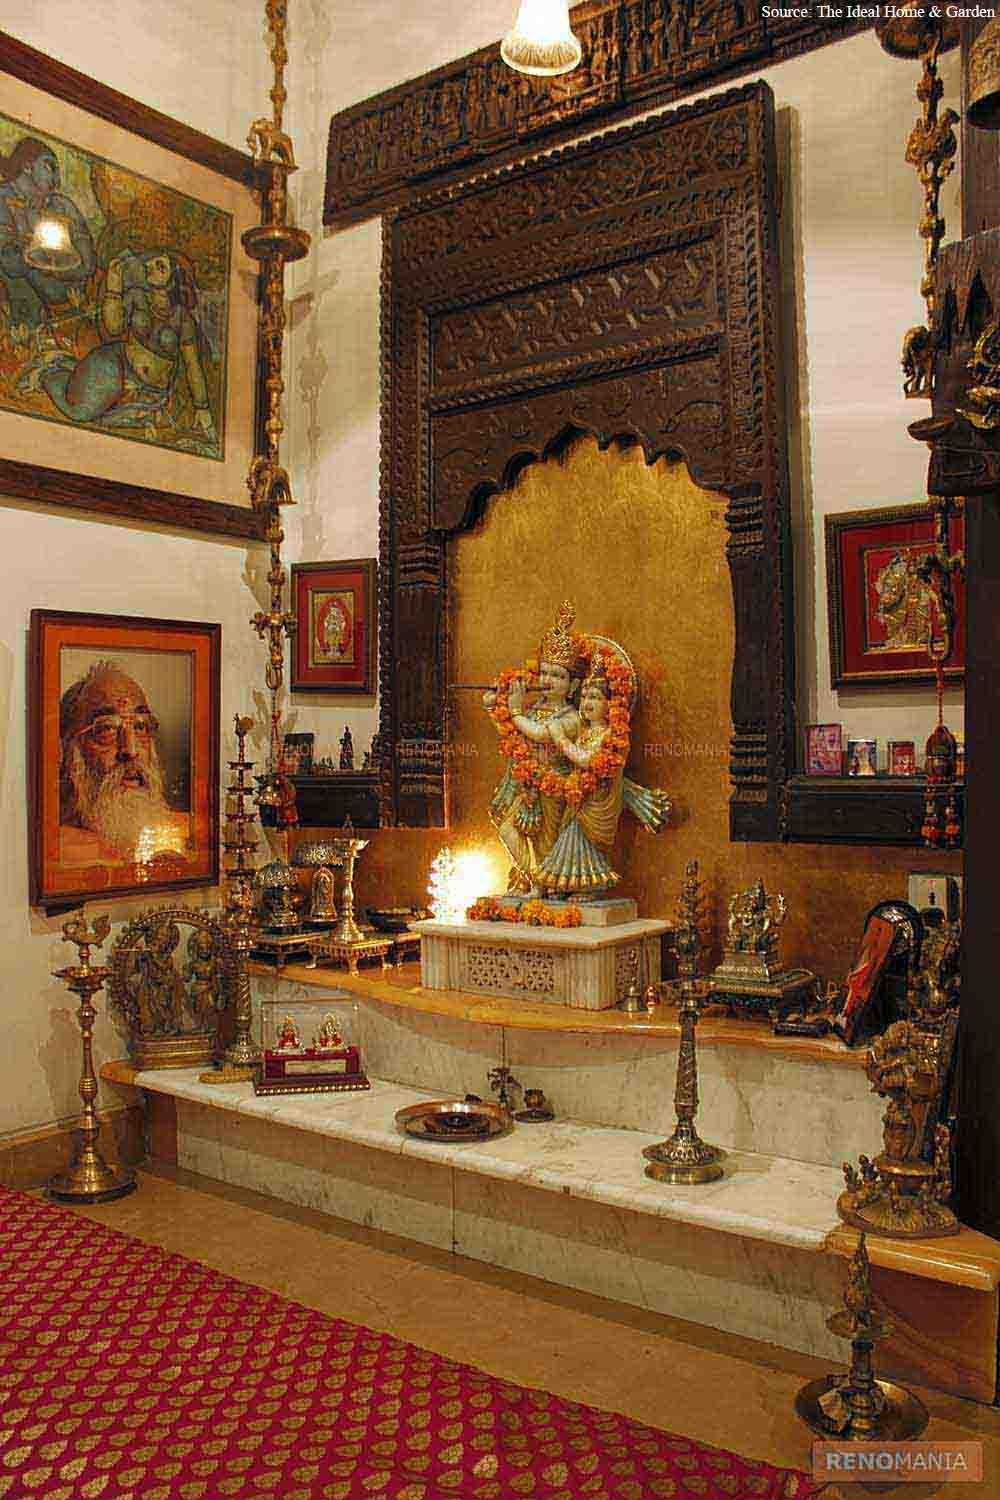 Best Kitchen Gallery: An Elegant Puja Room With Marble Floor And Hanging Bells And Idols of Hindu Temple For Home Designs on rachelxblog.com